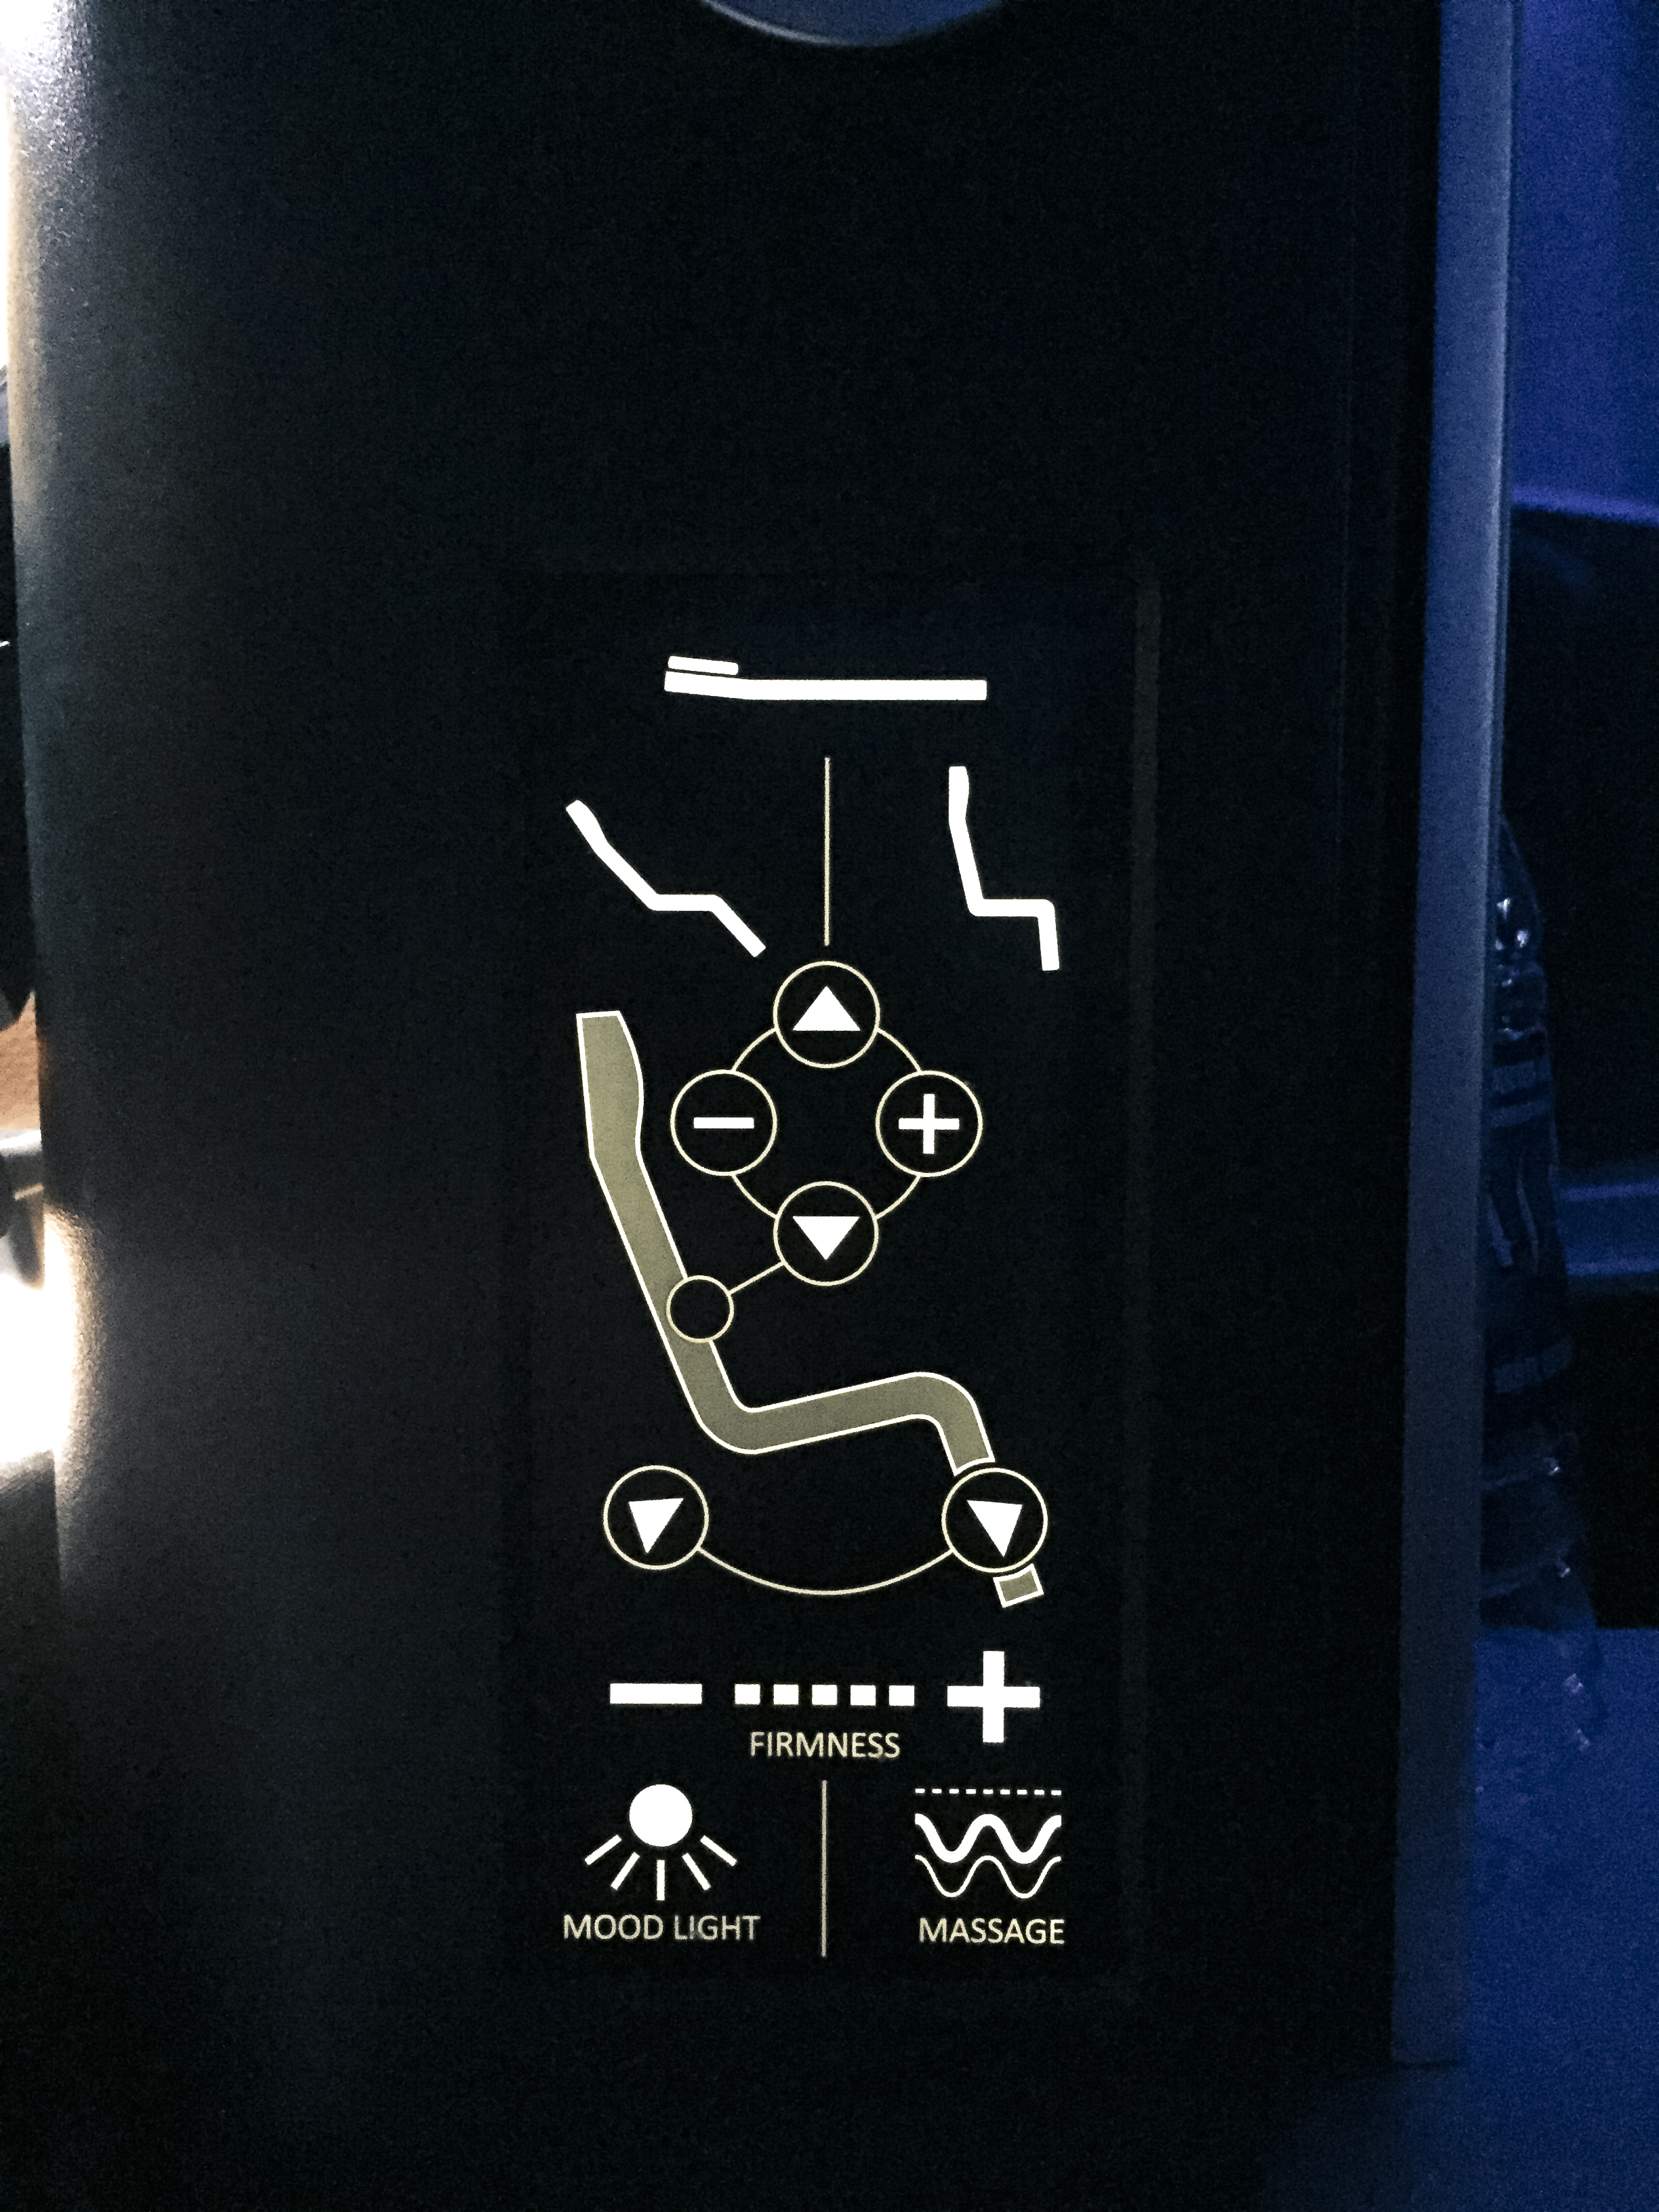 Seat controls, including airbag firmness adjustment.